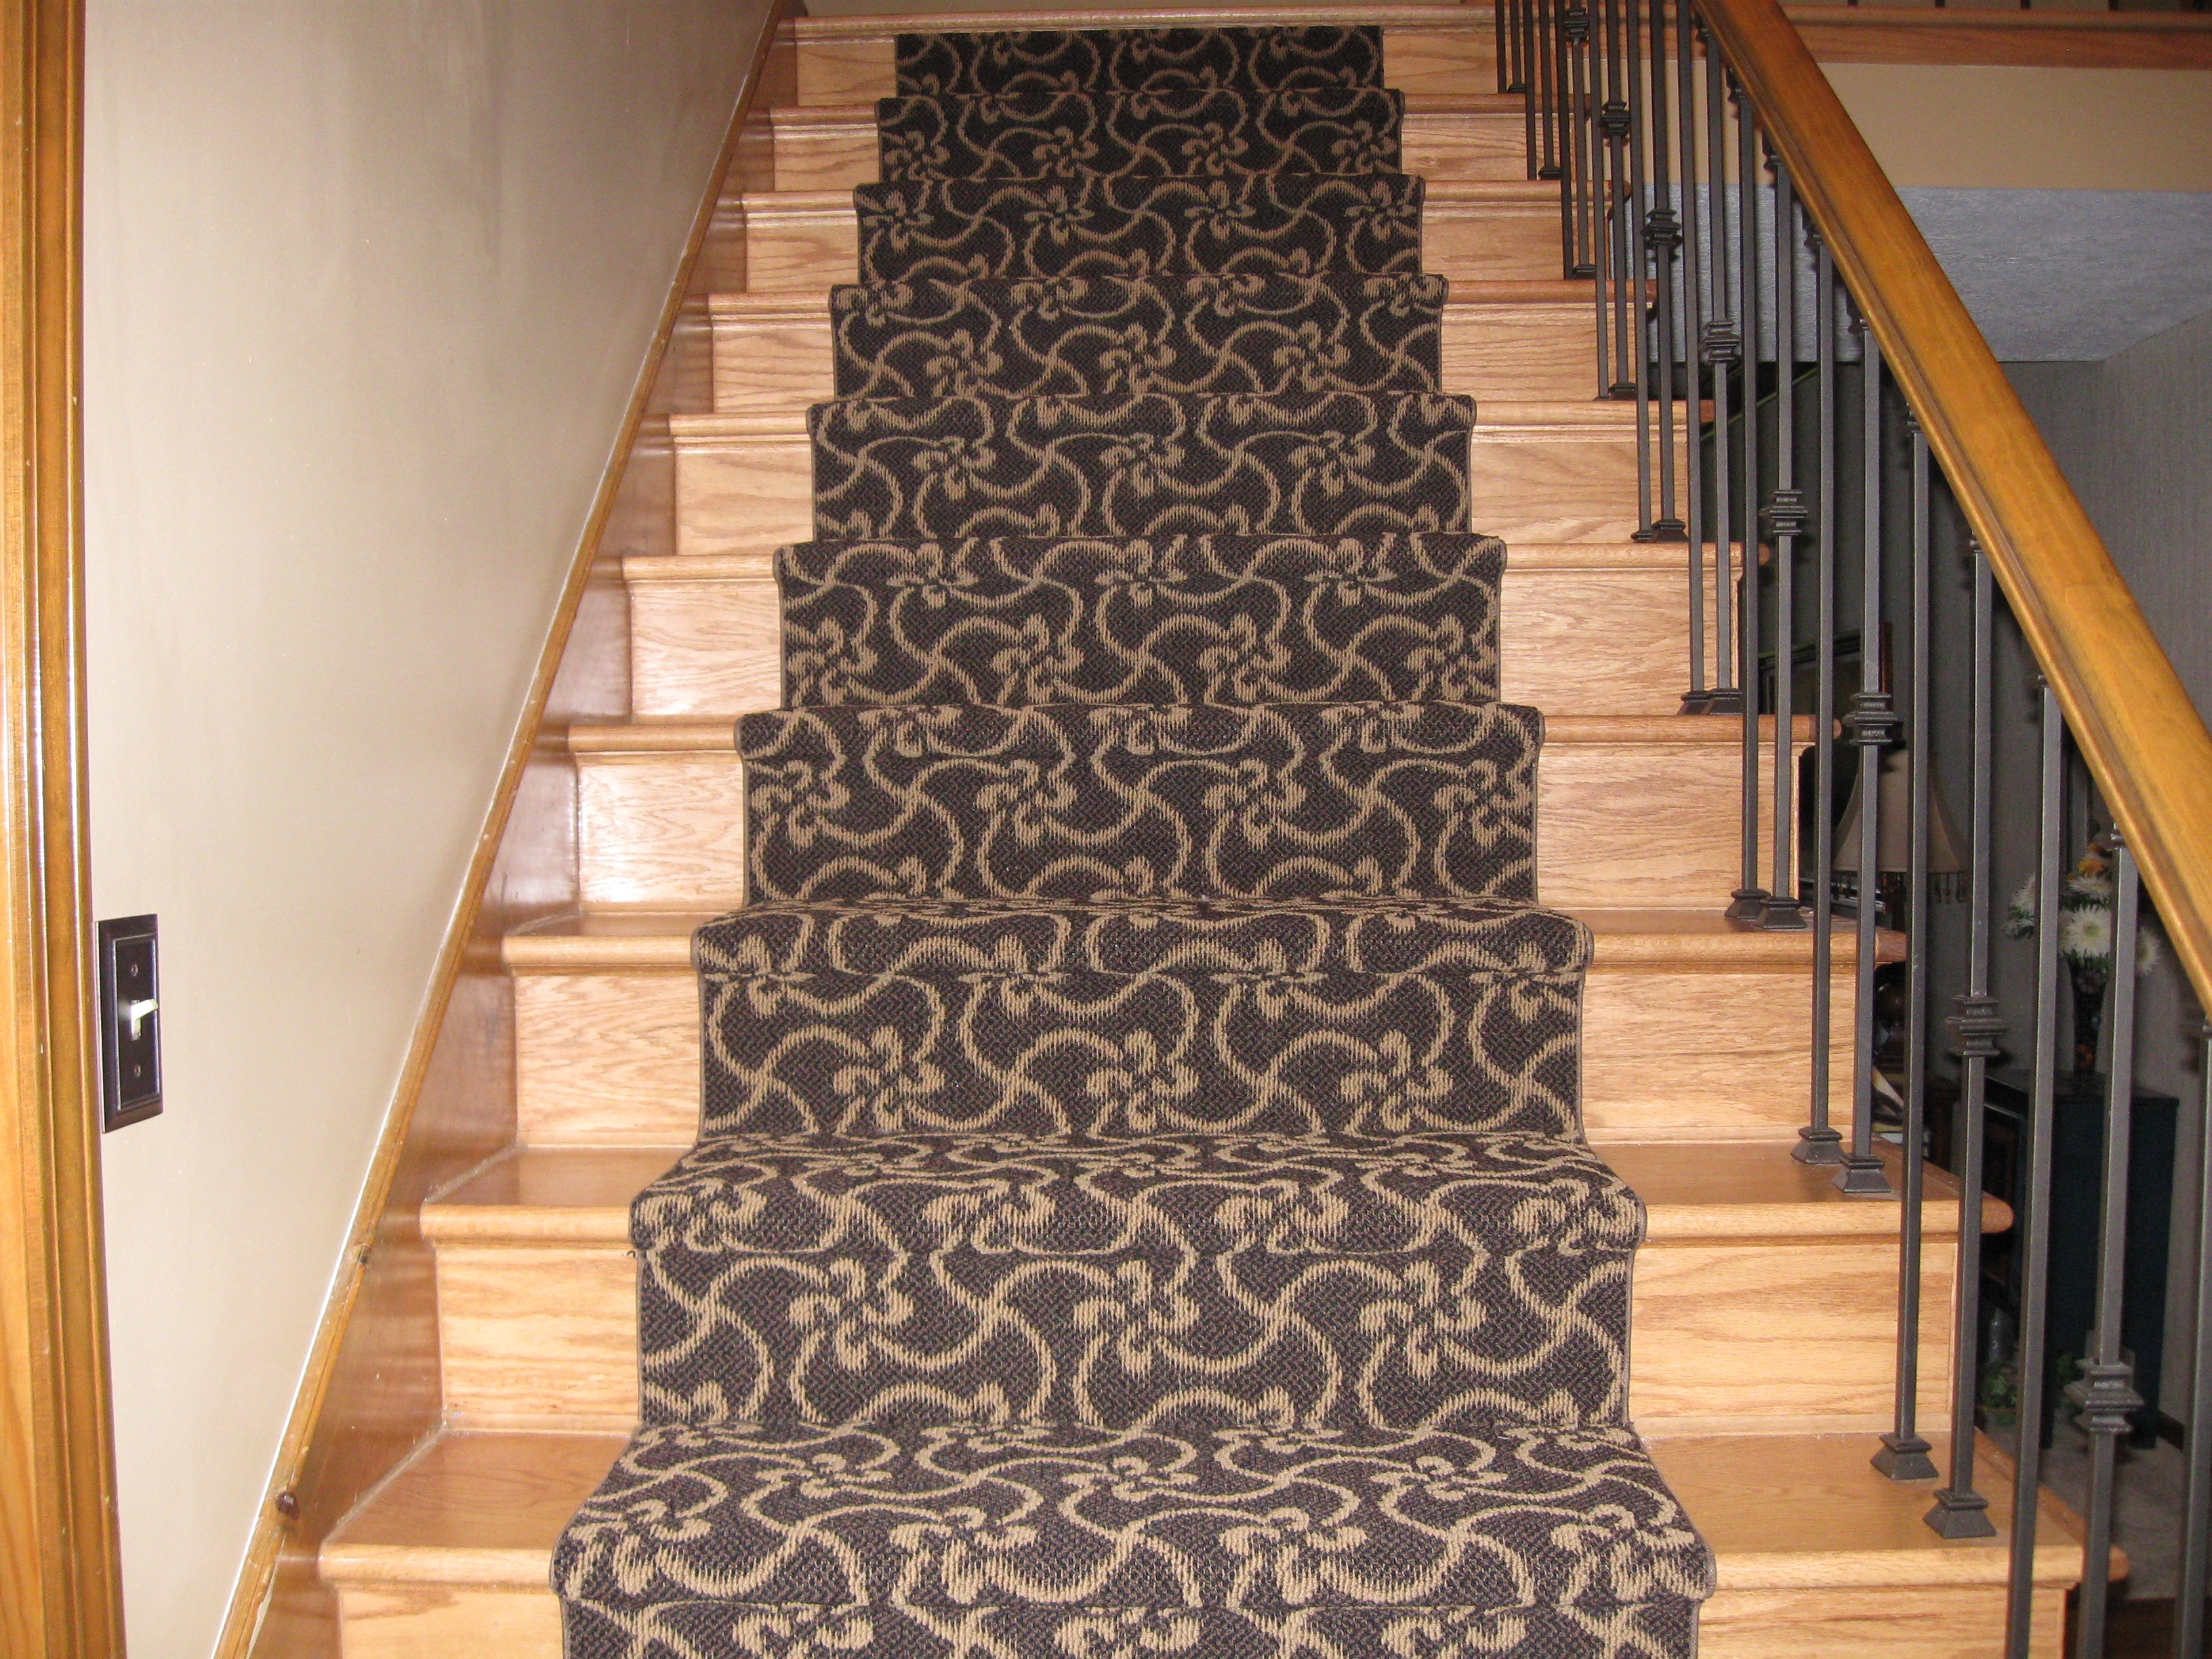 Flooring Pretty Stair Treads Carpet For Stair Decoration Idea For Stair Tread Rugs For Dogs (View 13 of 20)